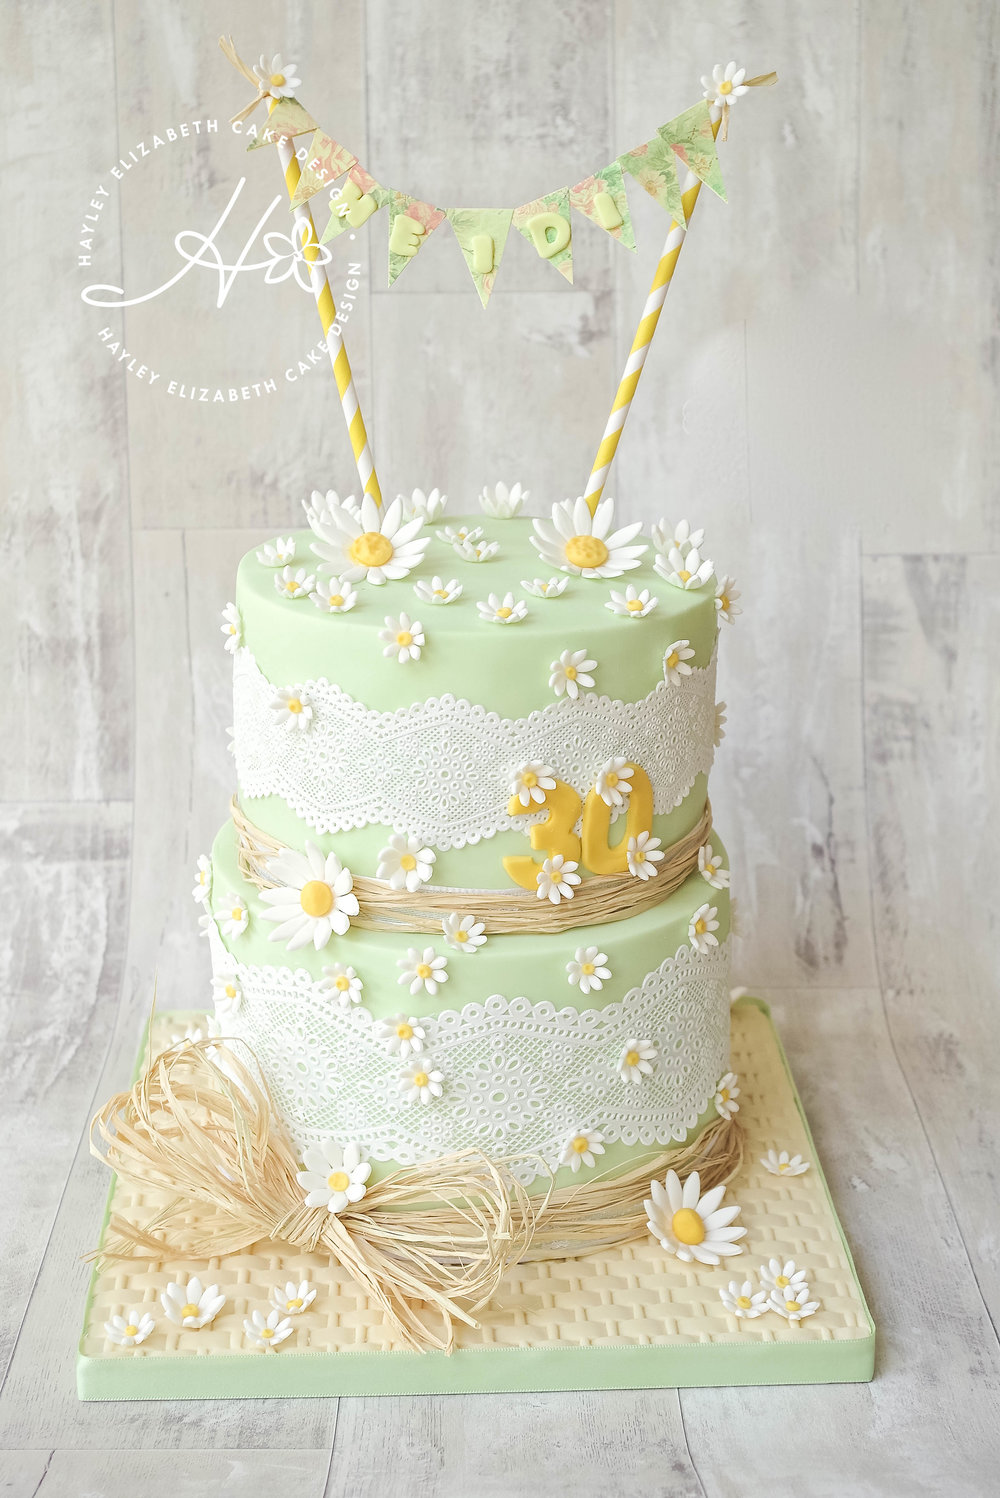 broderie-anglaise-lace-and-daisy-birthday-cake.jpg